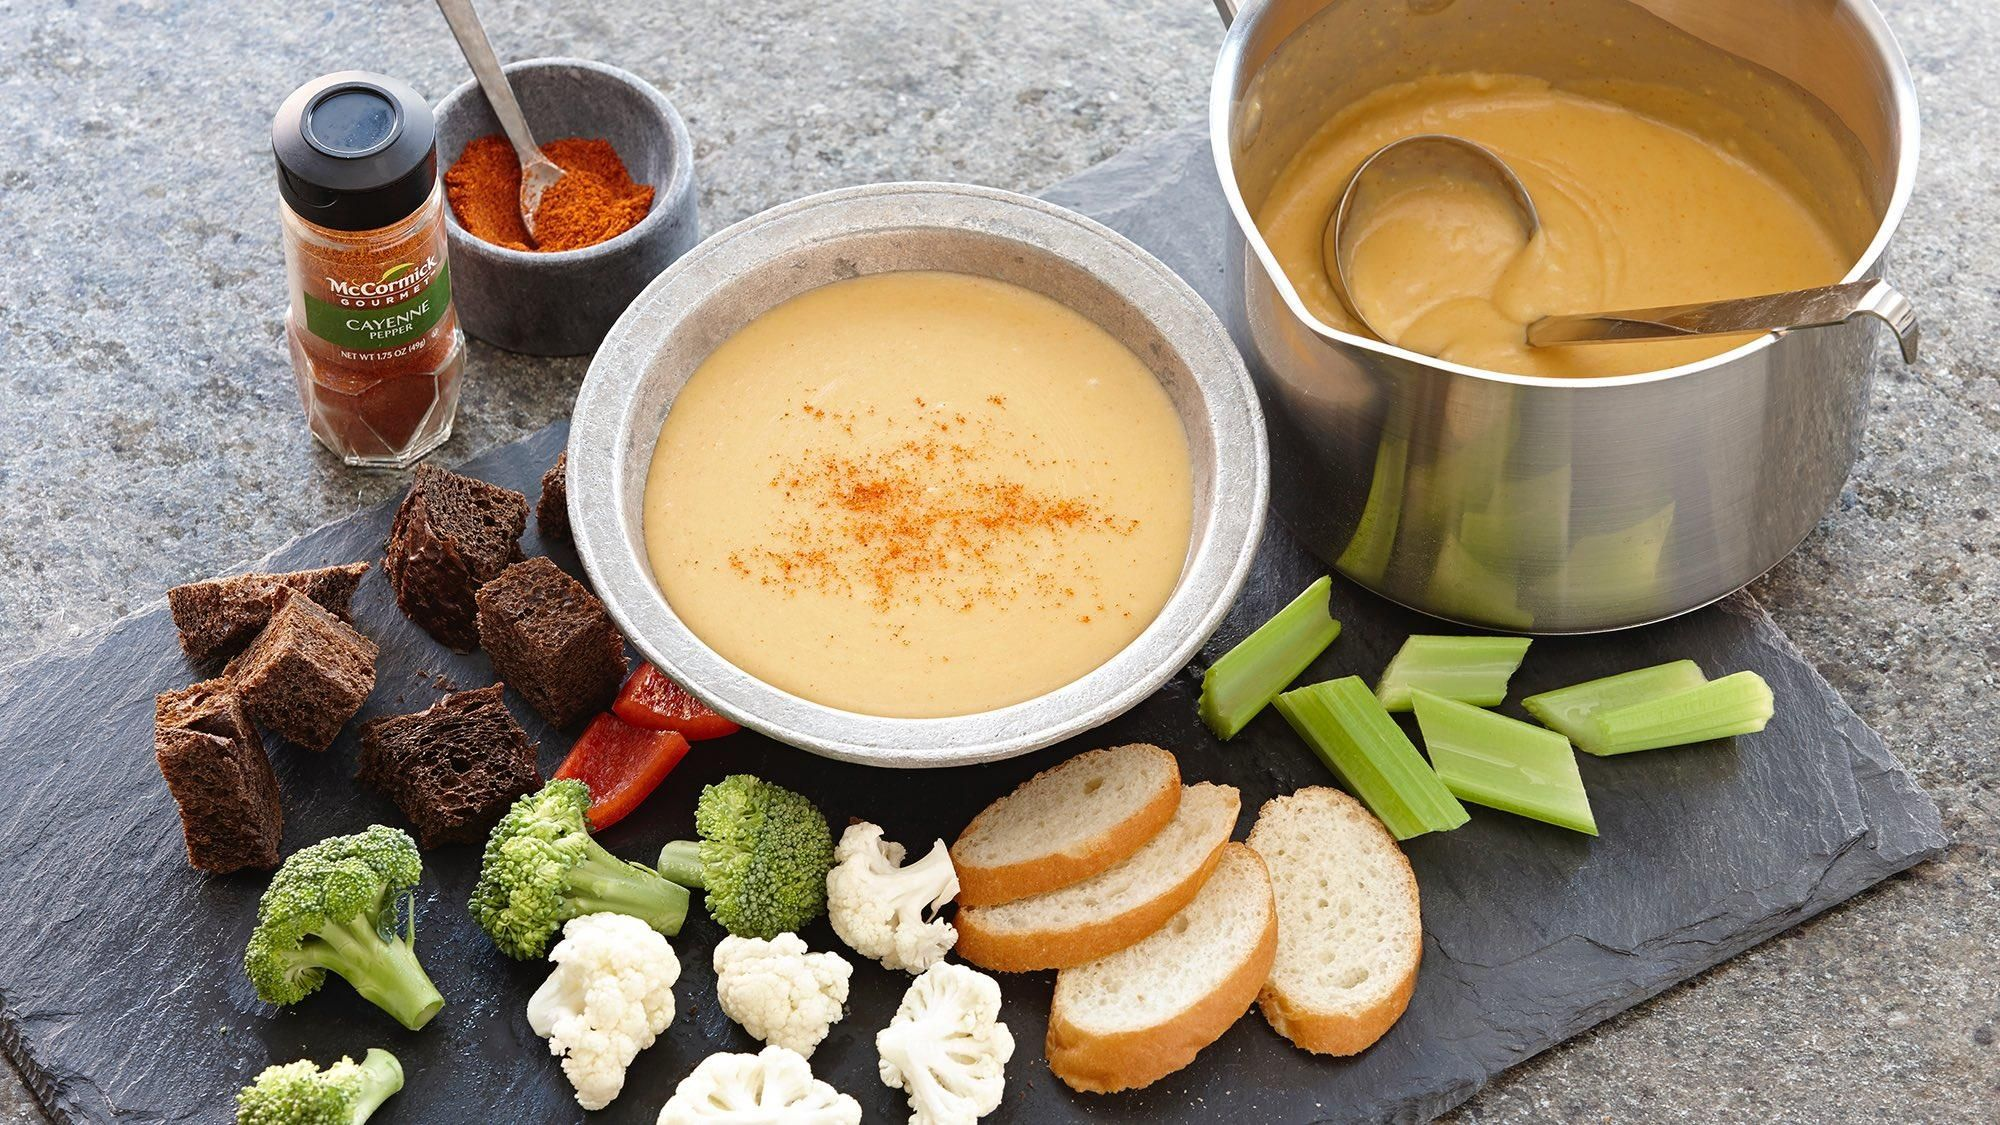 Spicy Beer Cheese Fondue Recipe (With images) Beer